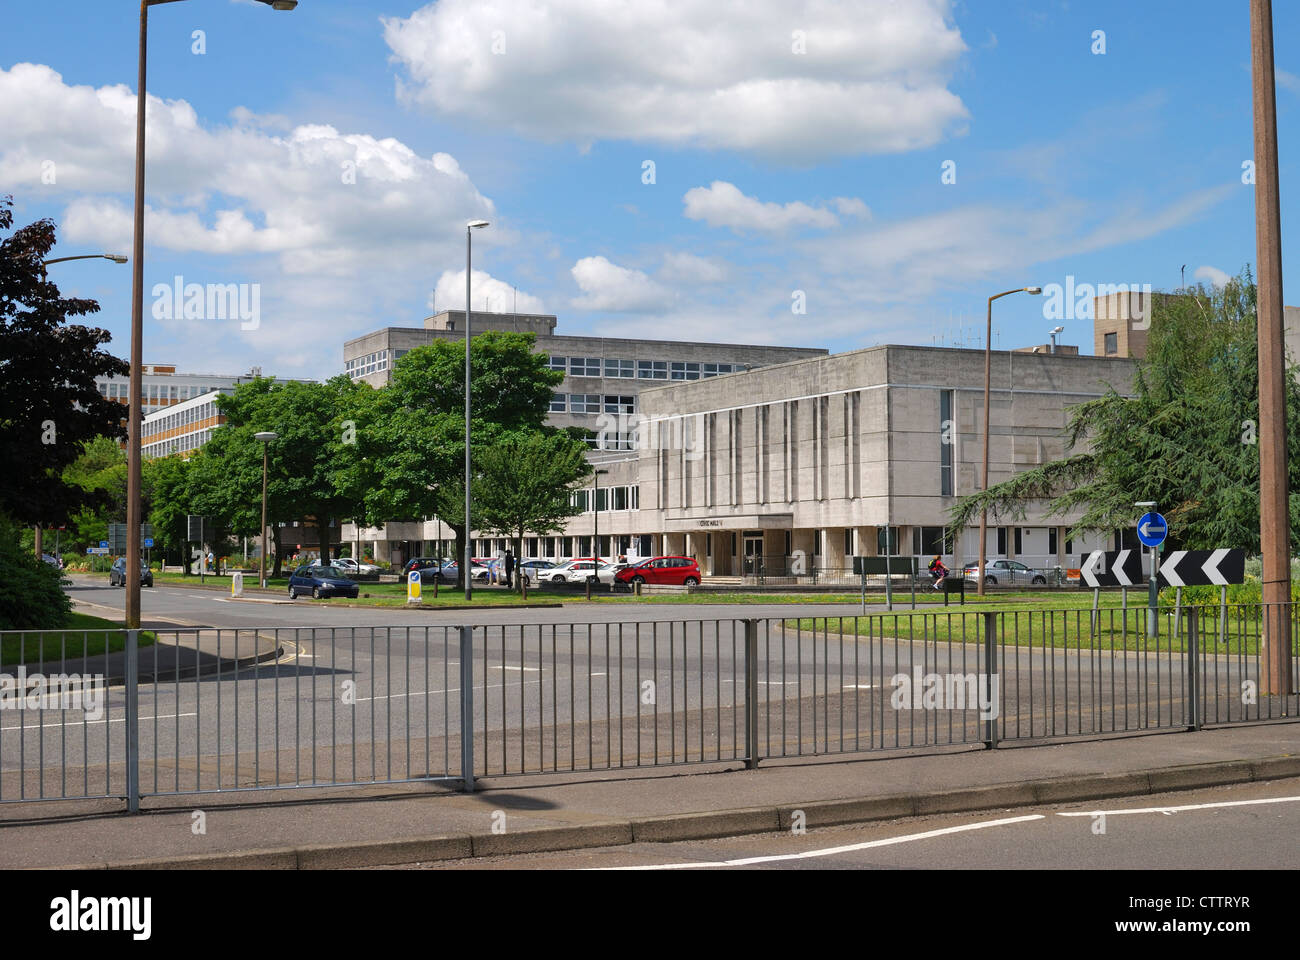 vCicic Hall and municipal buildings in Crawley. West Sussex. England - Stock Image